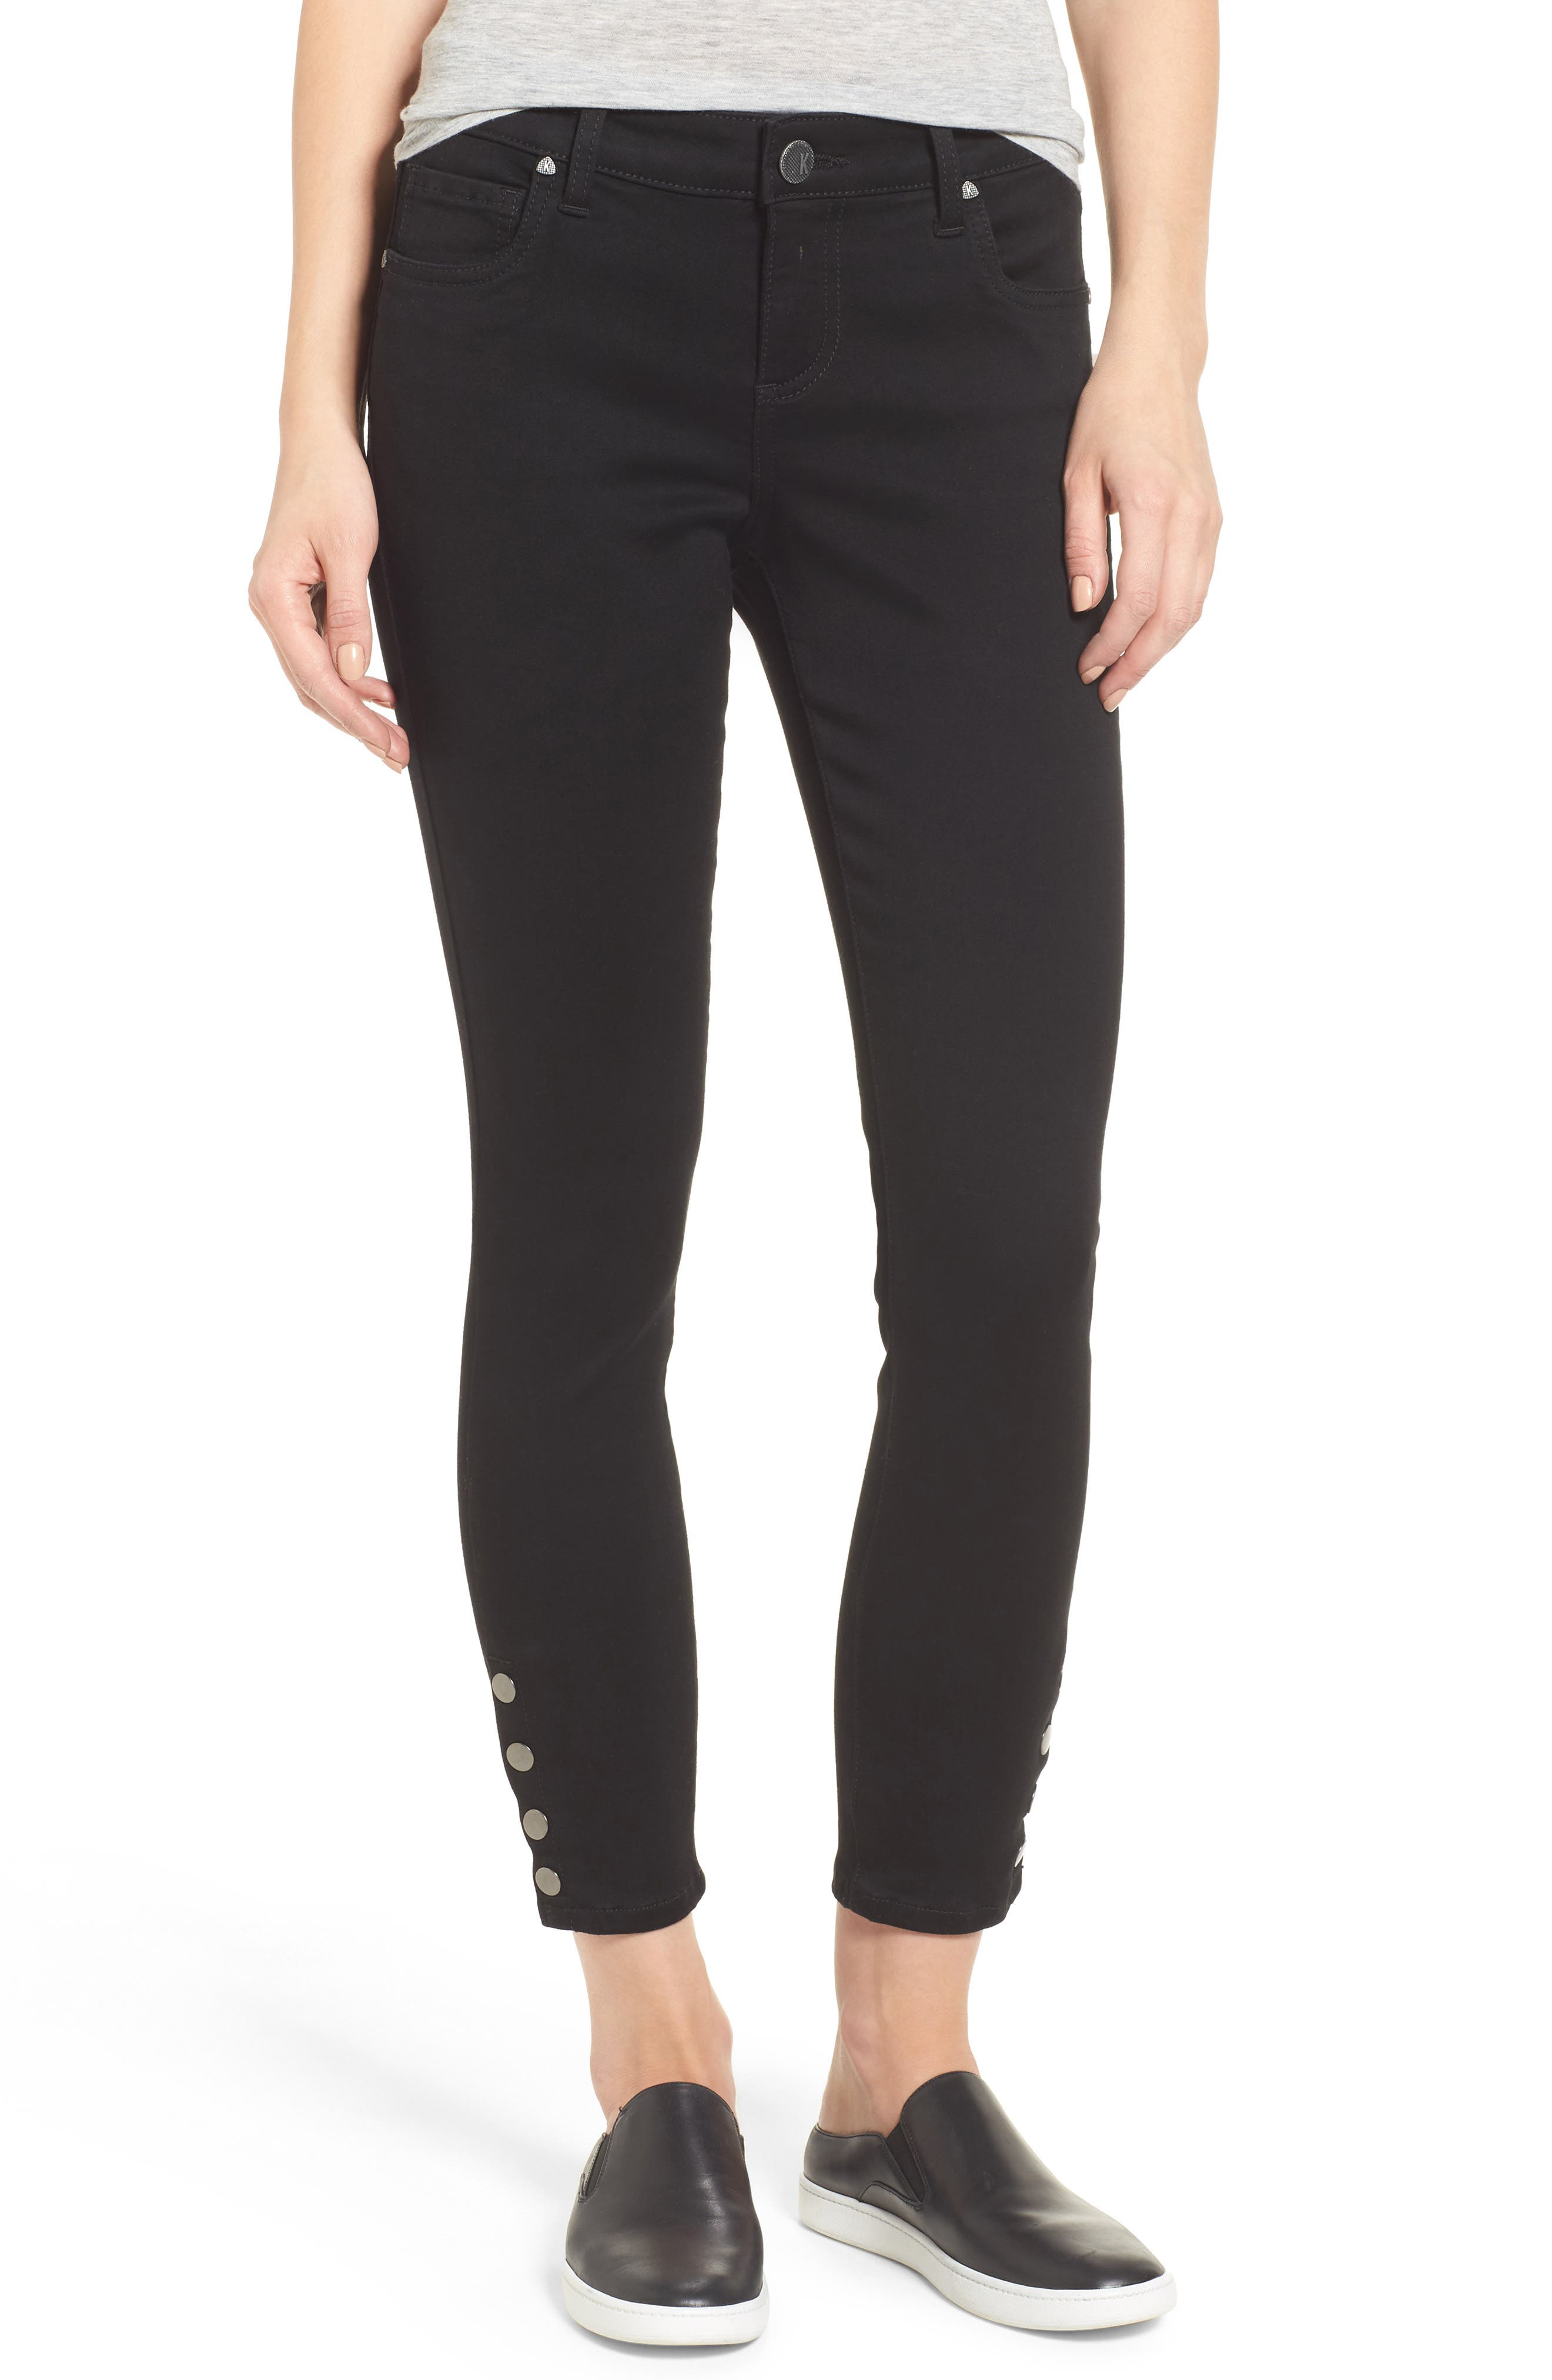 Alternate Image 1 Selected - KUT from the Kloth Snap Ankle Jeans (Regular & Petite)